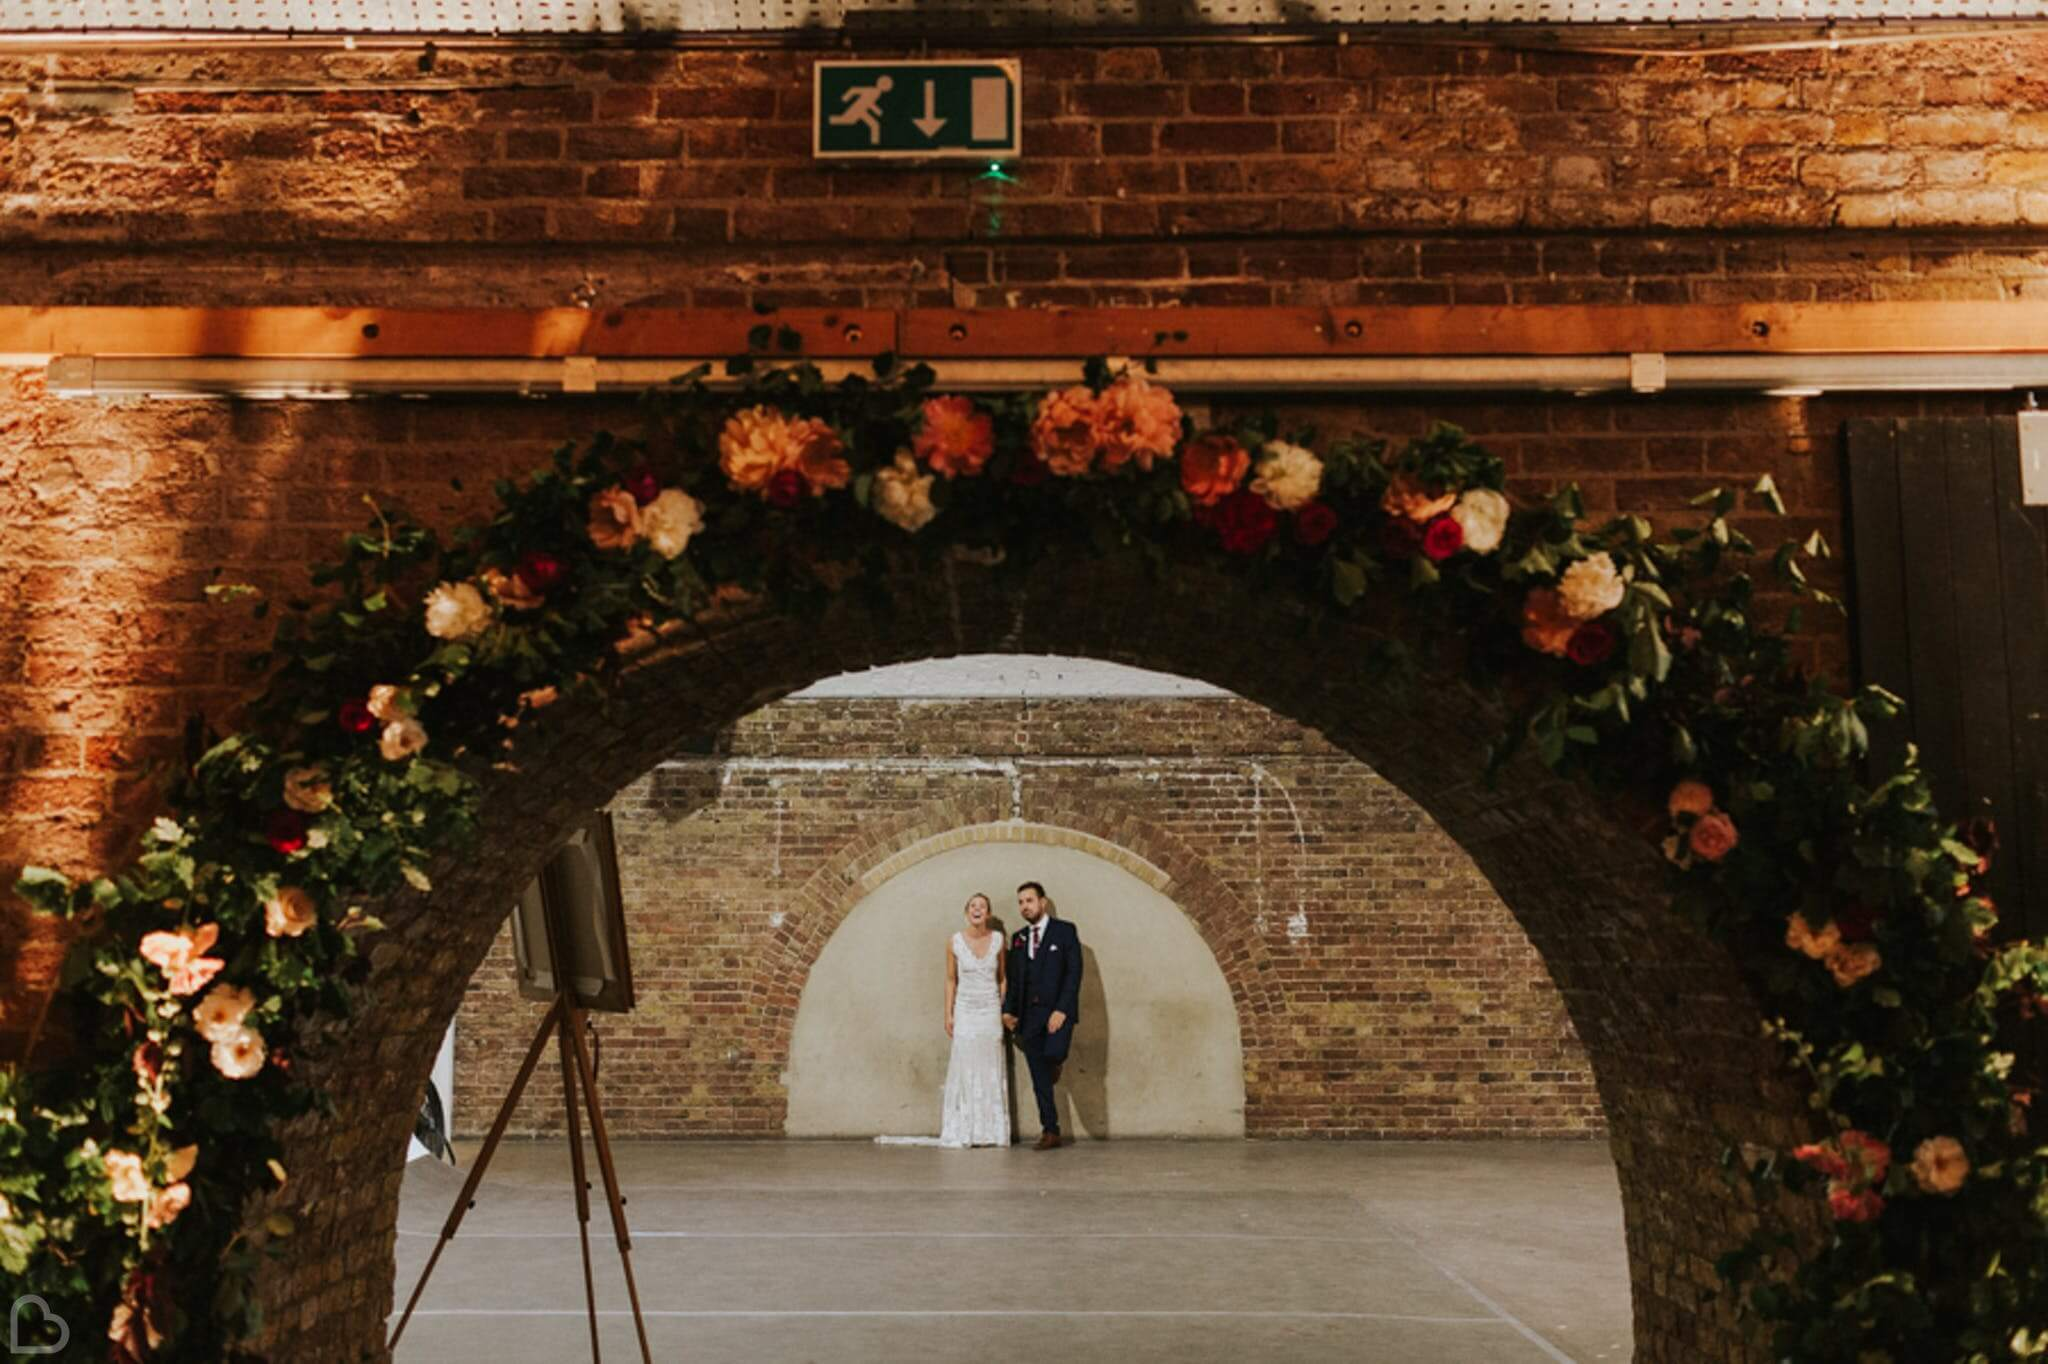 Bride and groom looking cheerful in their wedding venue, Shoreditch Studios.